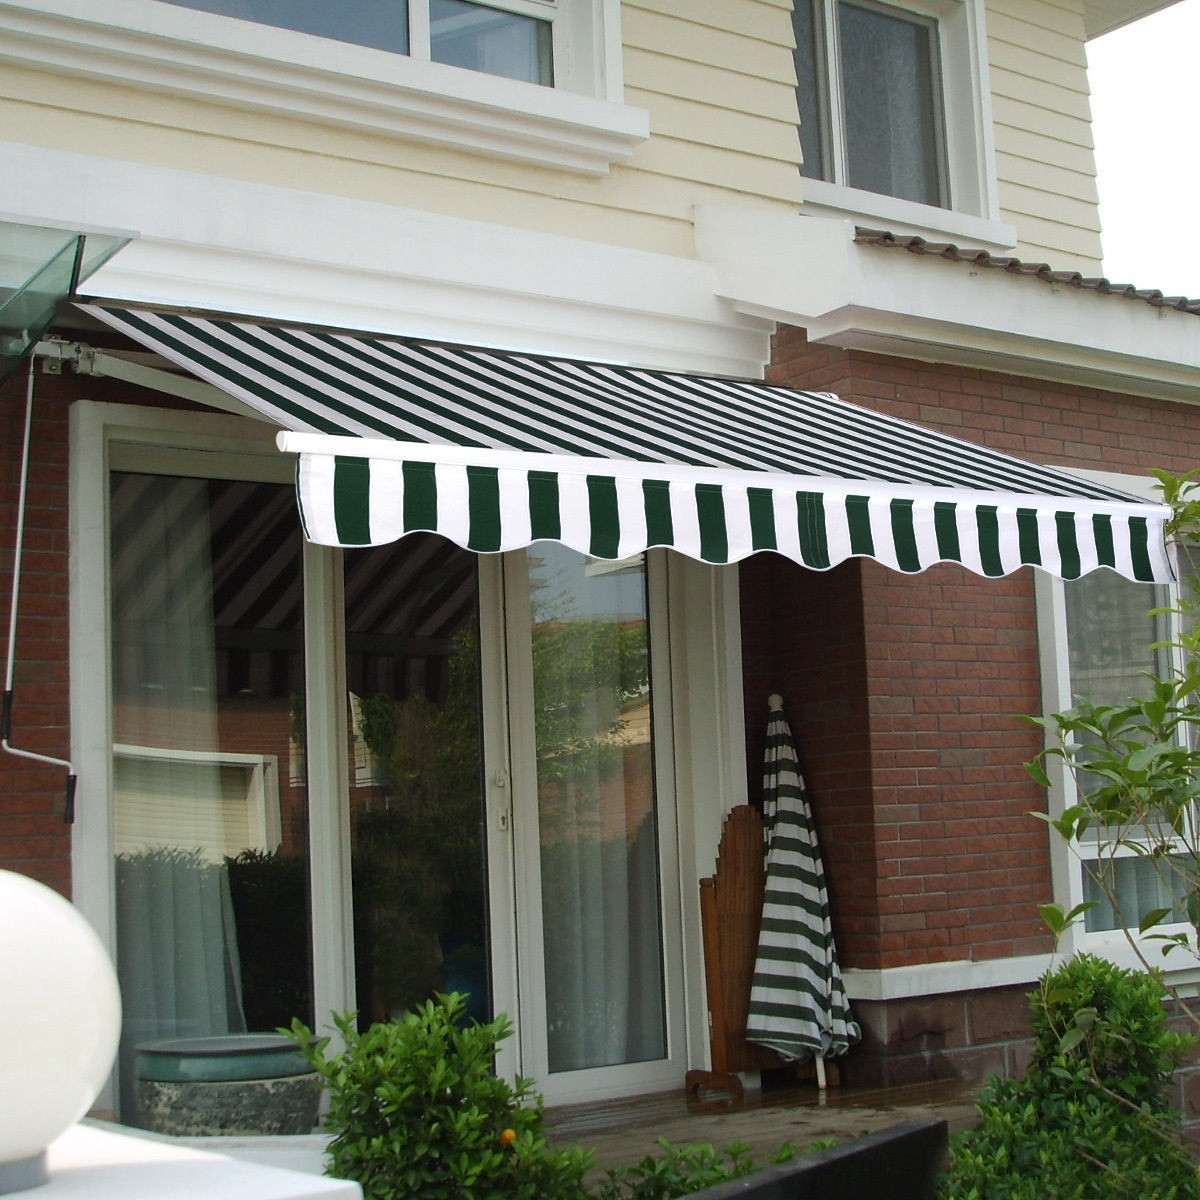 Manual Patio 8.2'×6.5' Retractable Deck Awning Sunshade Shelter Canopy Outdoor Stripe Green